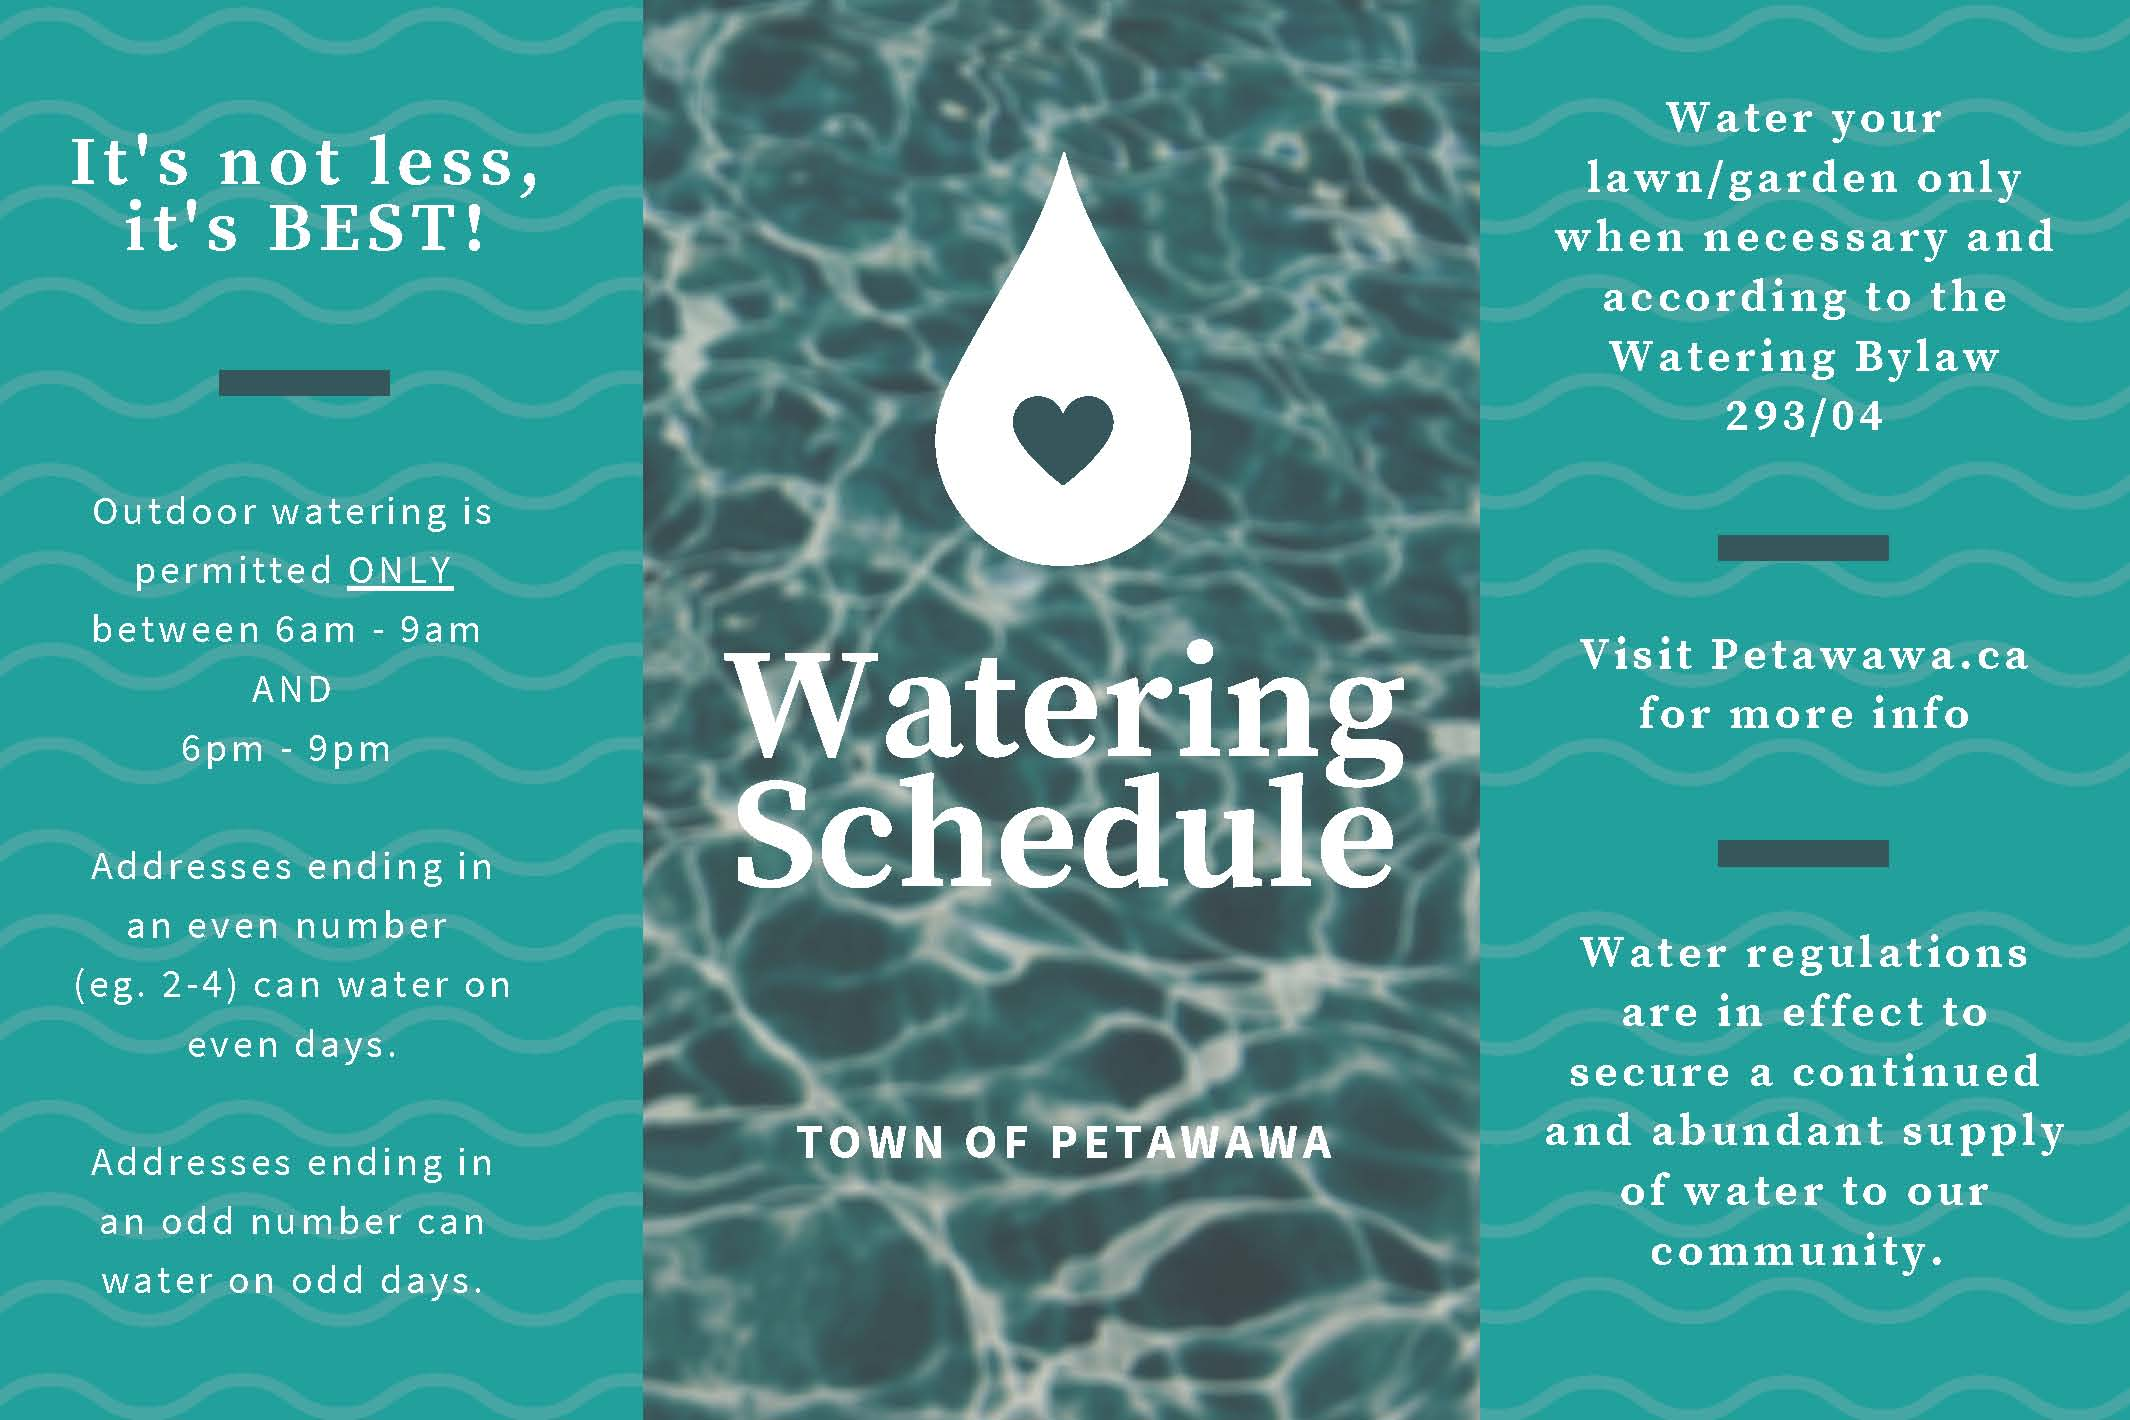 A water image with messaging about lawn watering